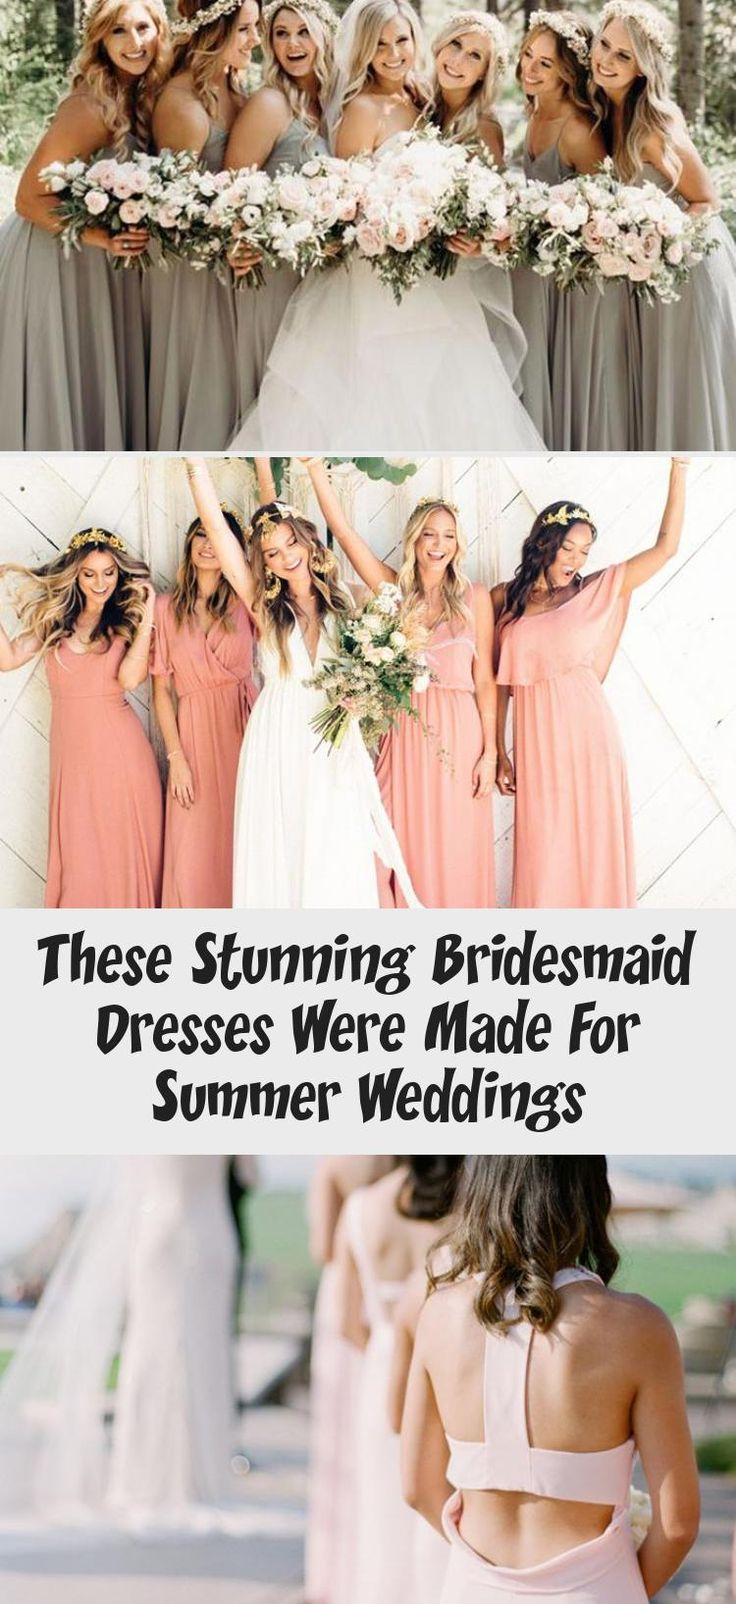 The Most Stunning Summer Bridesmaid Dresses Of 2018 #AfricanBridesmaidDresses #BridesmaidDressesBoho #GoldBridesmaidDresses #BridesmaidDressesTwoPiece #OrangeBridesmaidDresses